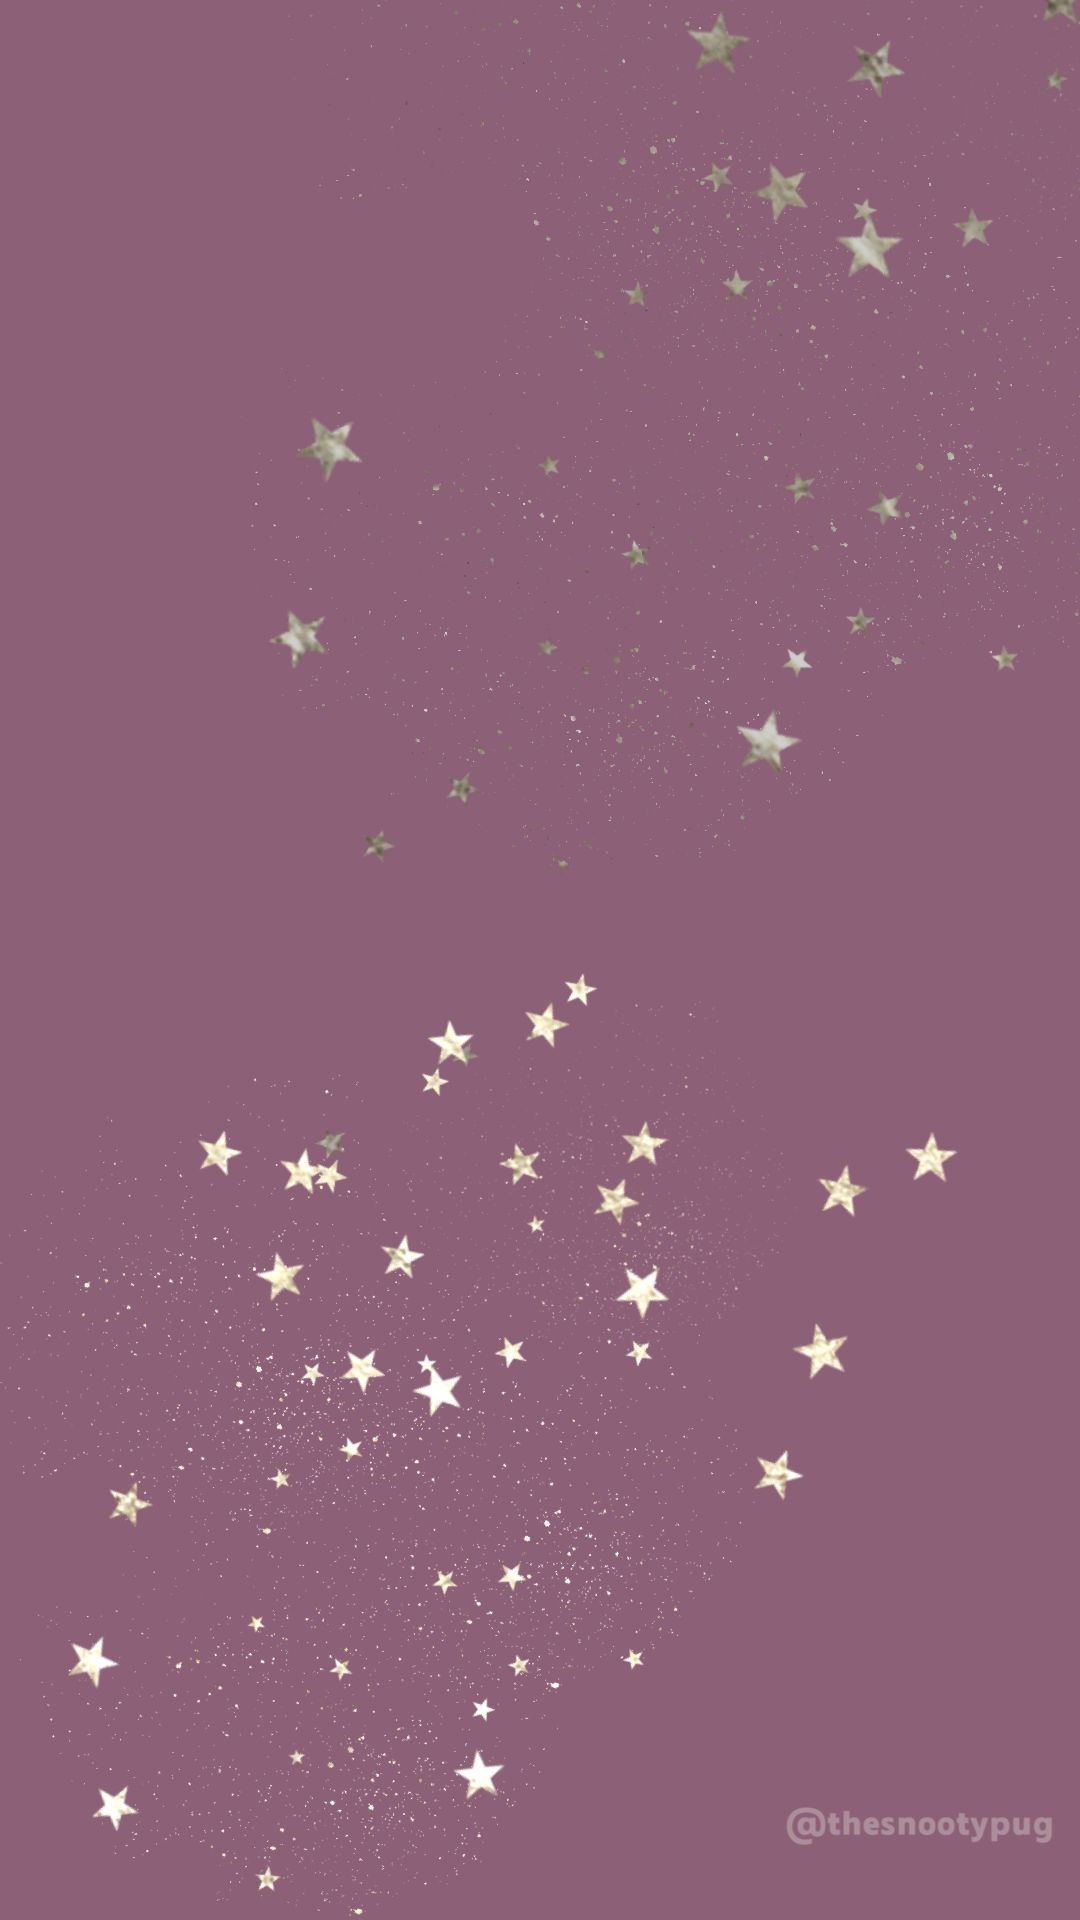 Purple Star Wallpaper Iphone Background Wallpaper Colourful Wallpaper Iphone Iphone Wallpaper Stars